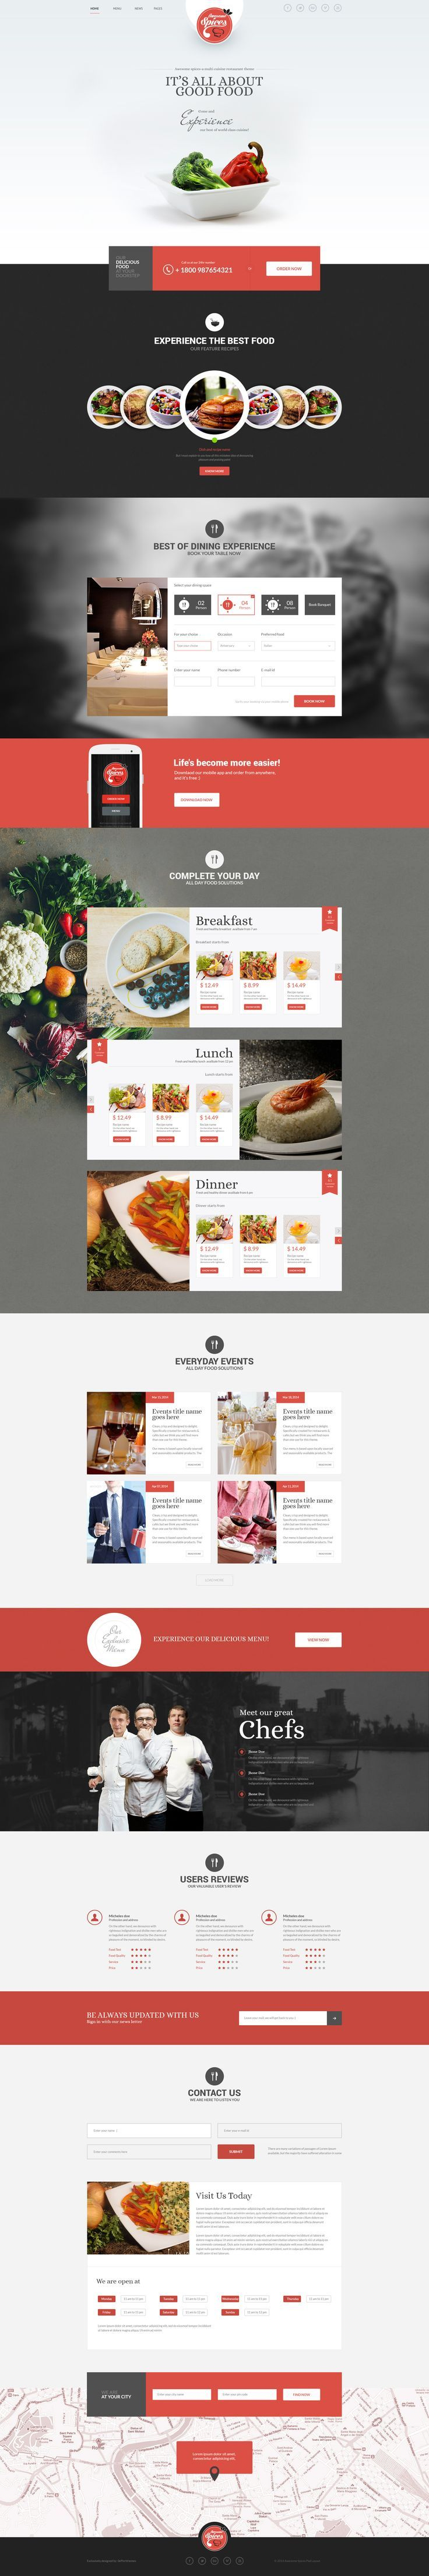 Awesome Spice One Page Restaurant Theme Download Themeforest Net Web Layout Design Web Design Food Web Design